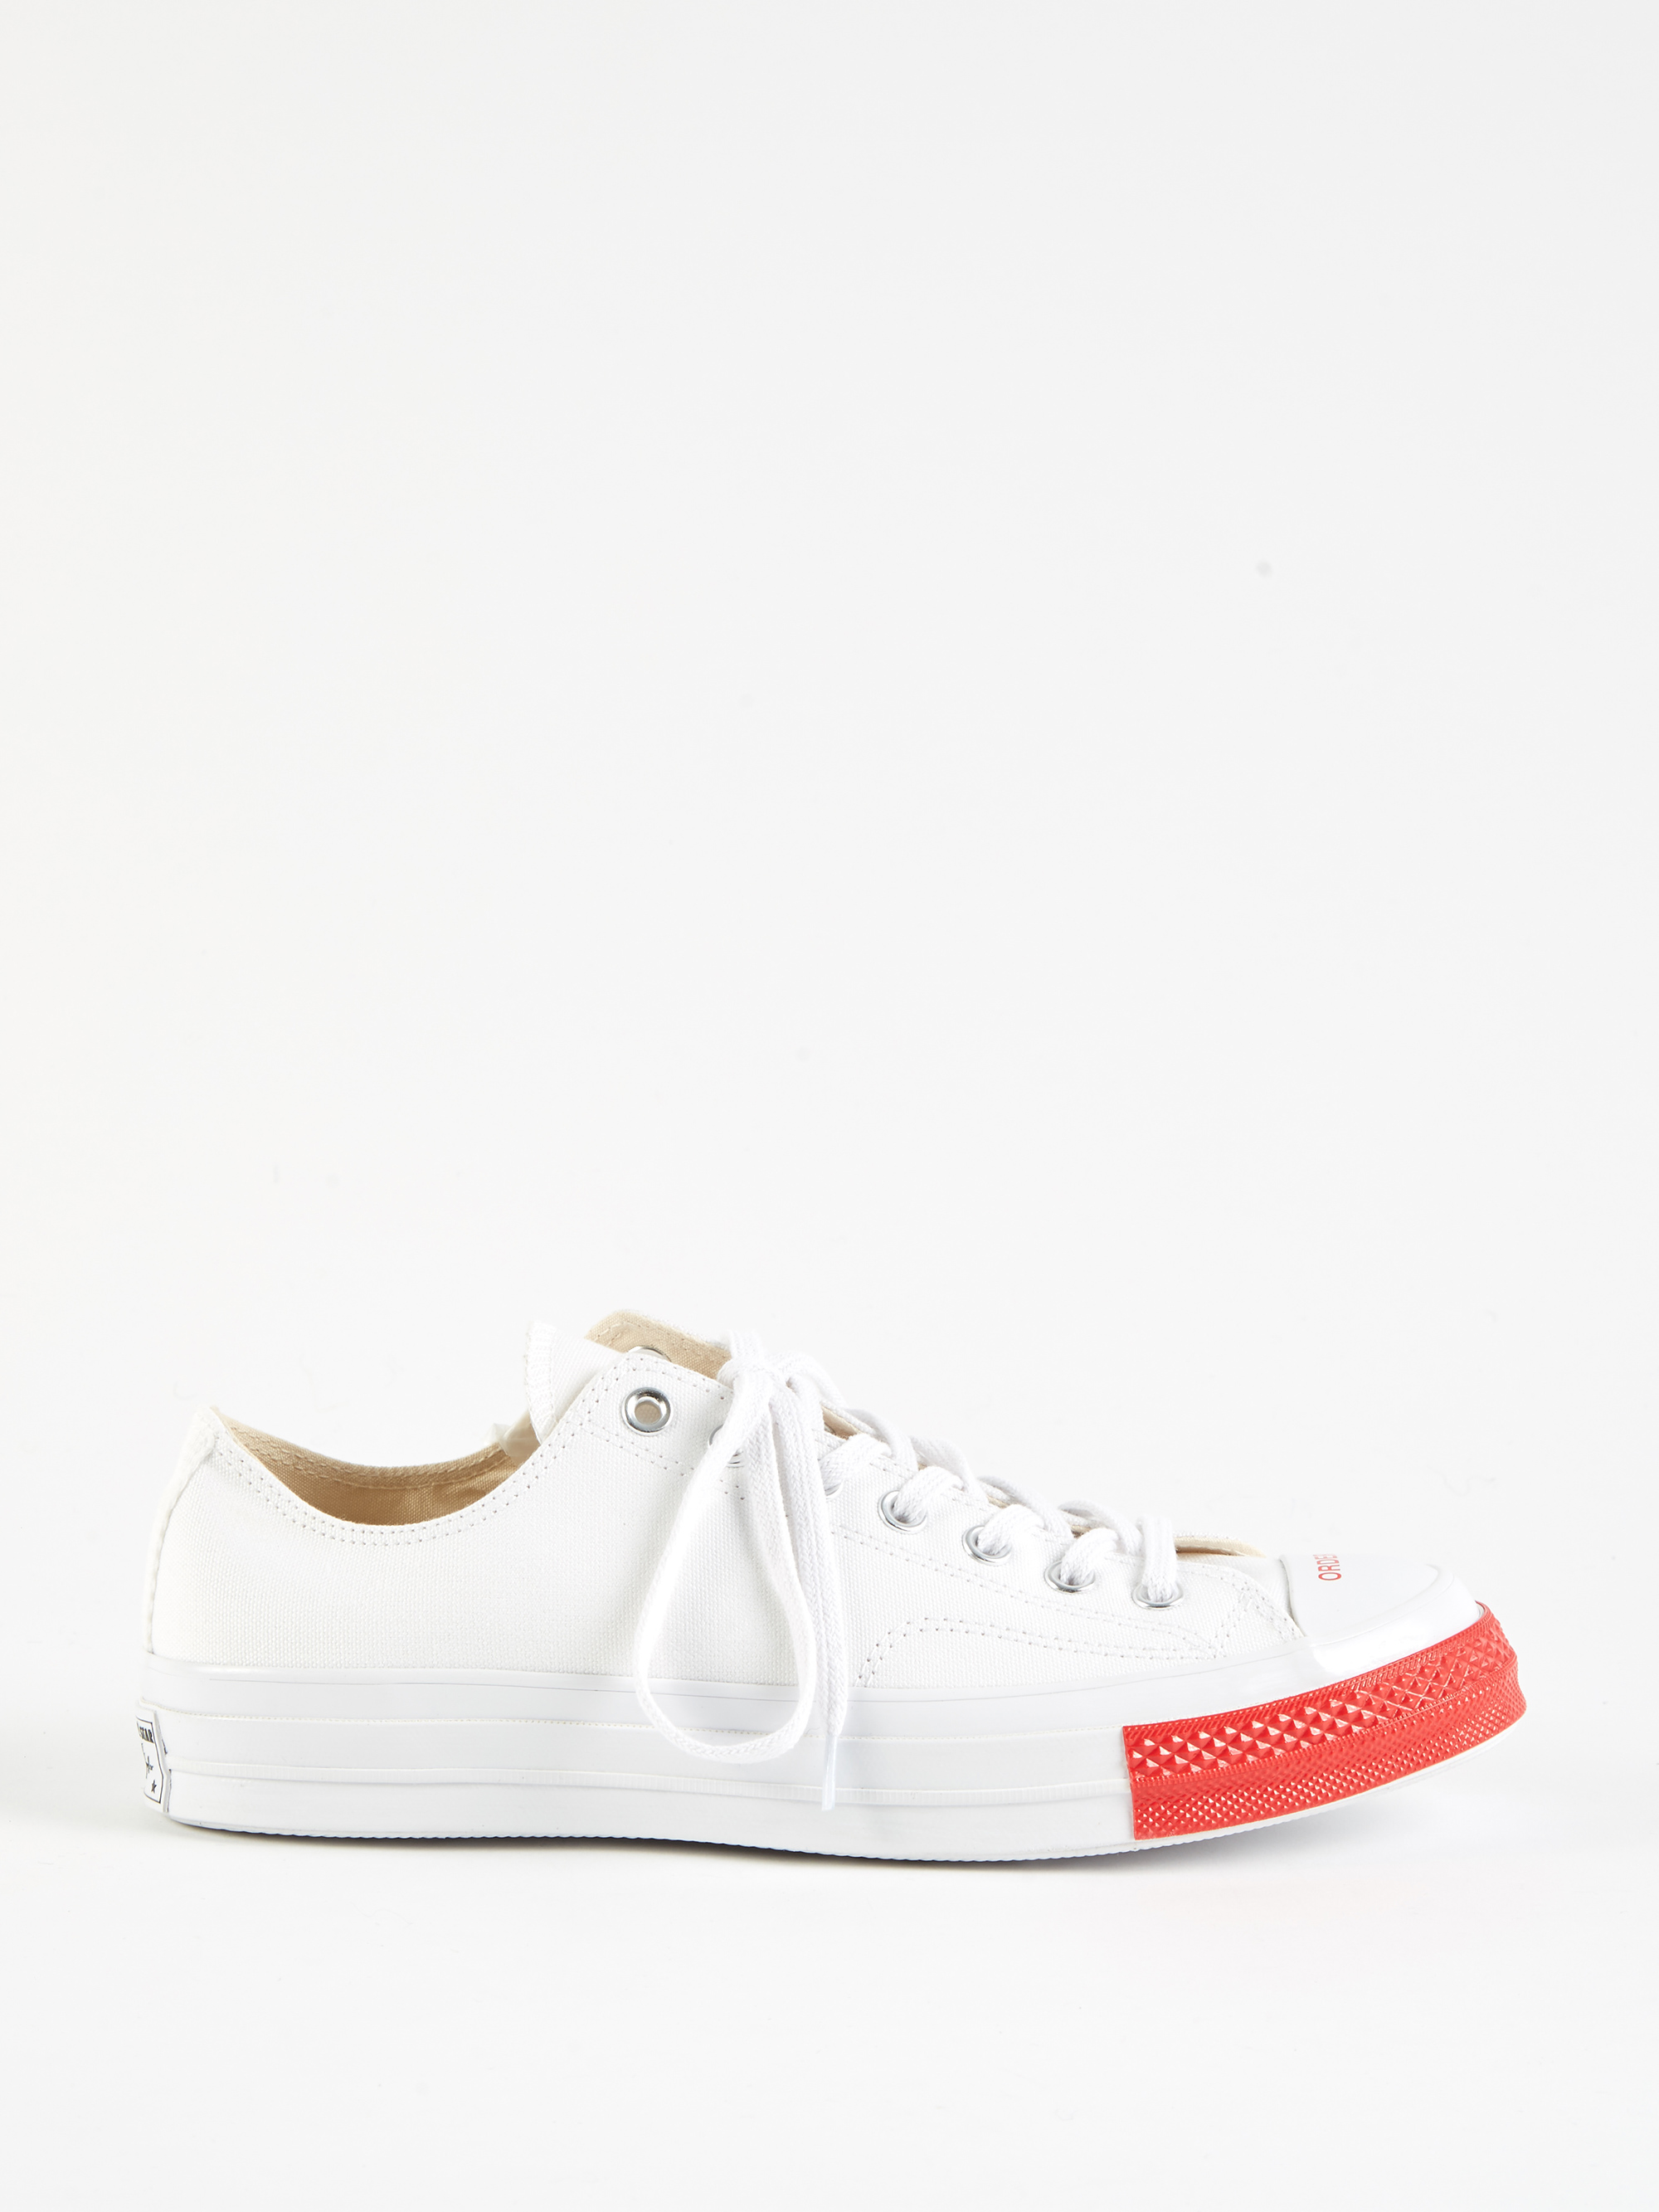 4f3e3d05803 Converse x Undercover Chuck Taylor All Star 70 Ox - White Red